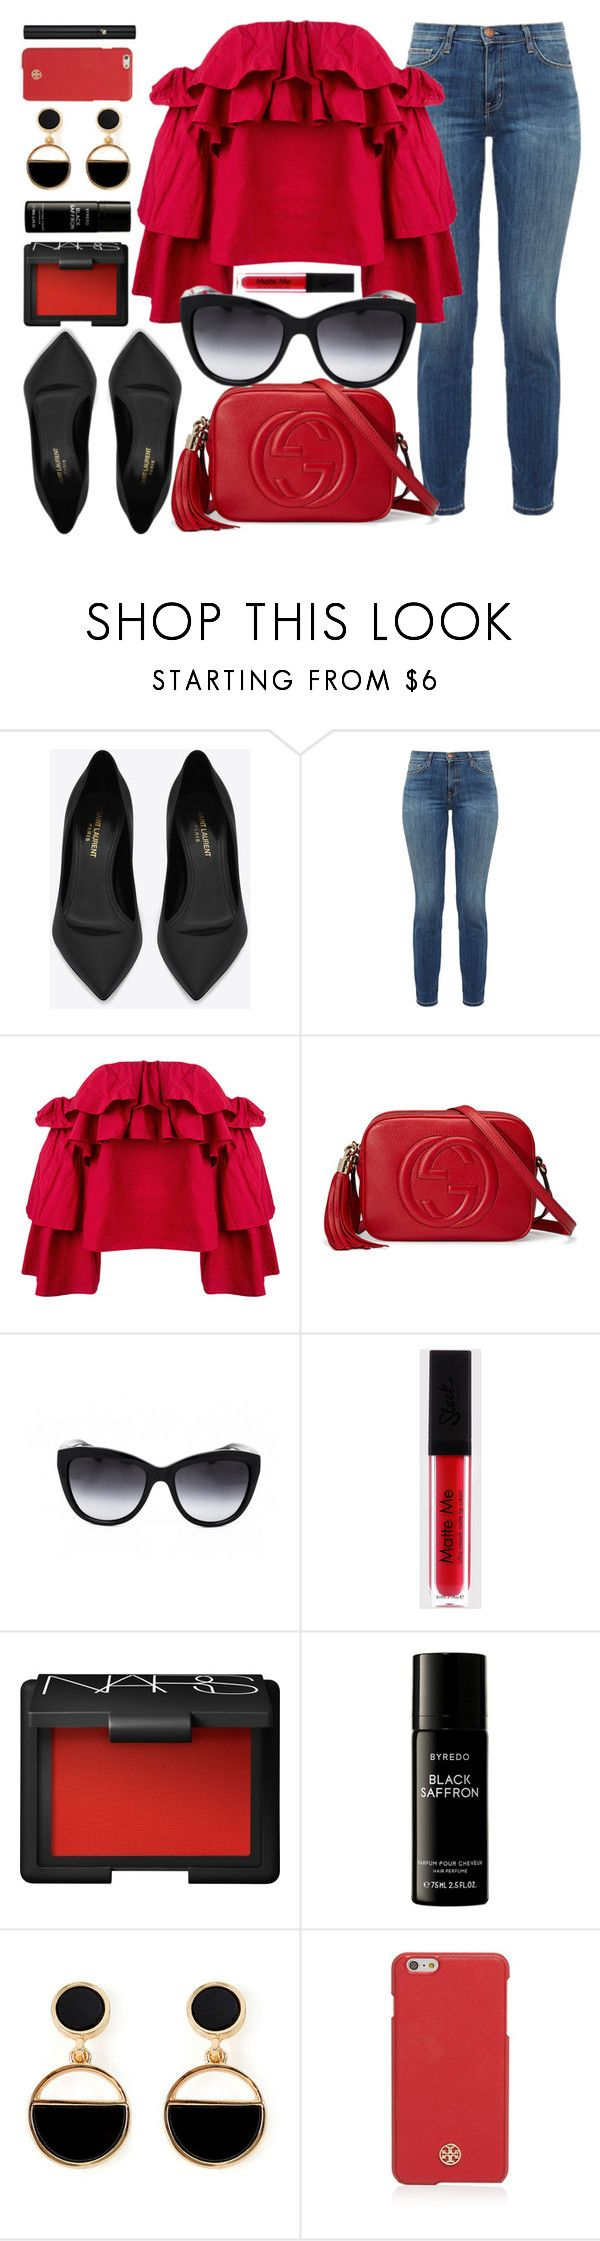 """""""Red"""" by smartbuyglasses ❤ liked on Polyvore featuring Yves Saint Laurent, Current/Elliott, Erika Cavallini Semi-Couture, Gucci, Dolce&Gabbana, NARS Cosmetics, Liberty, Warehouse, Tory Burch and Lancôme"""